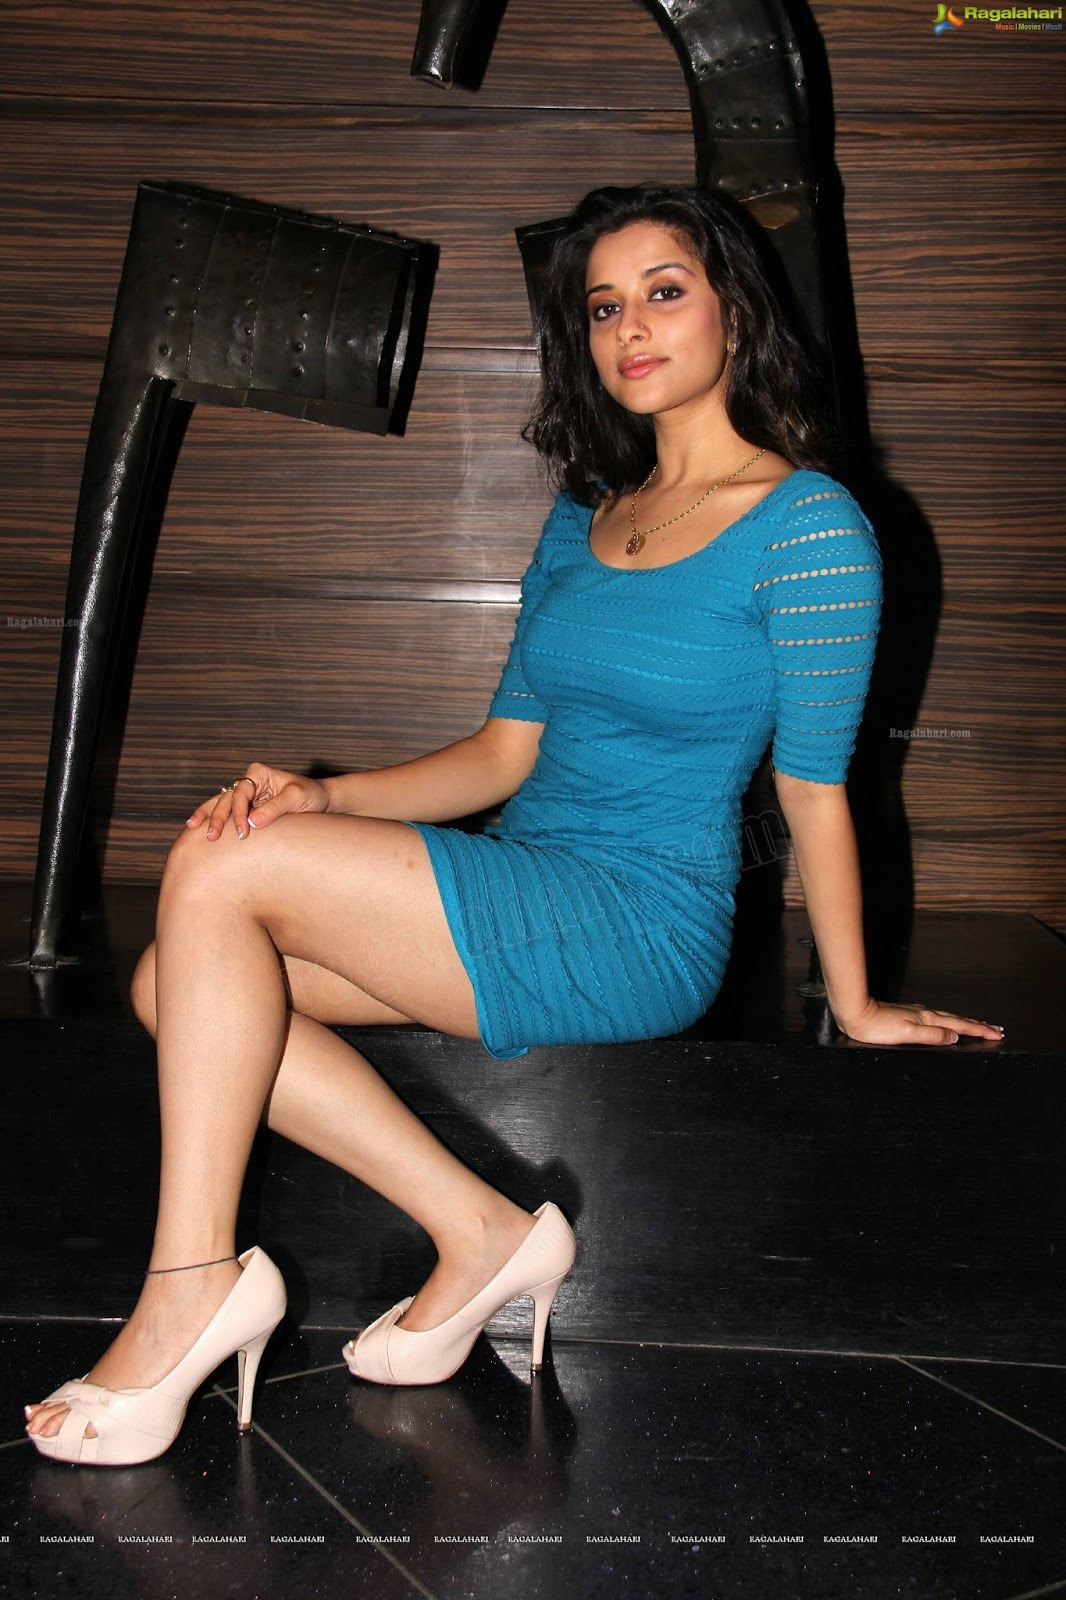 Madhurima Looks Hot in Tight Blue Mini